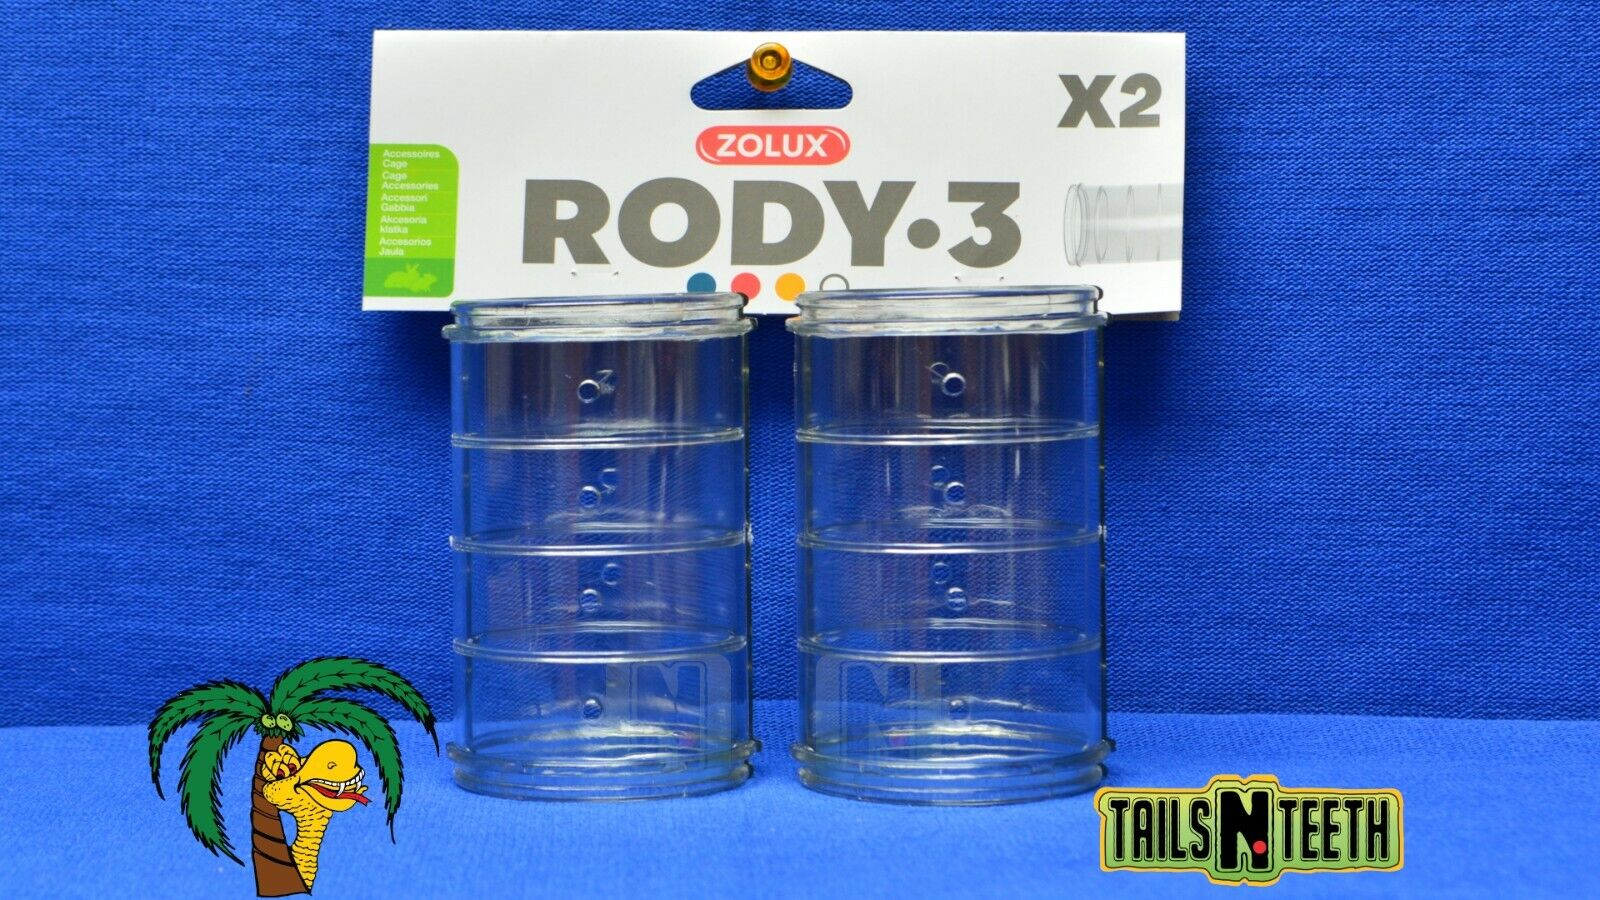 Zolux RODY-3 Straight Tube For Rody-3 InterConnecting Cages - 2 Pack - CA$3.99